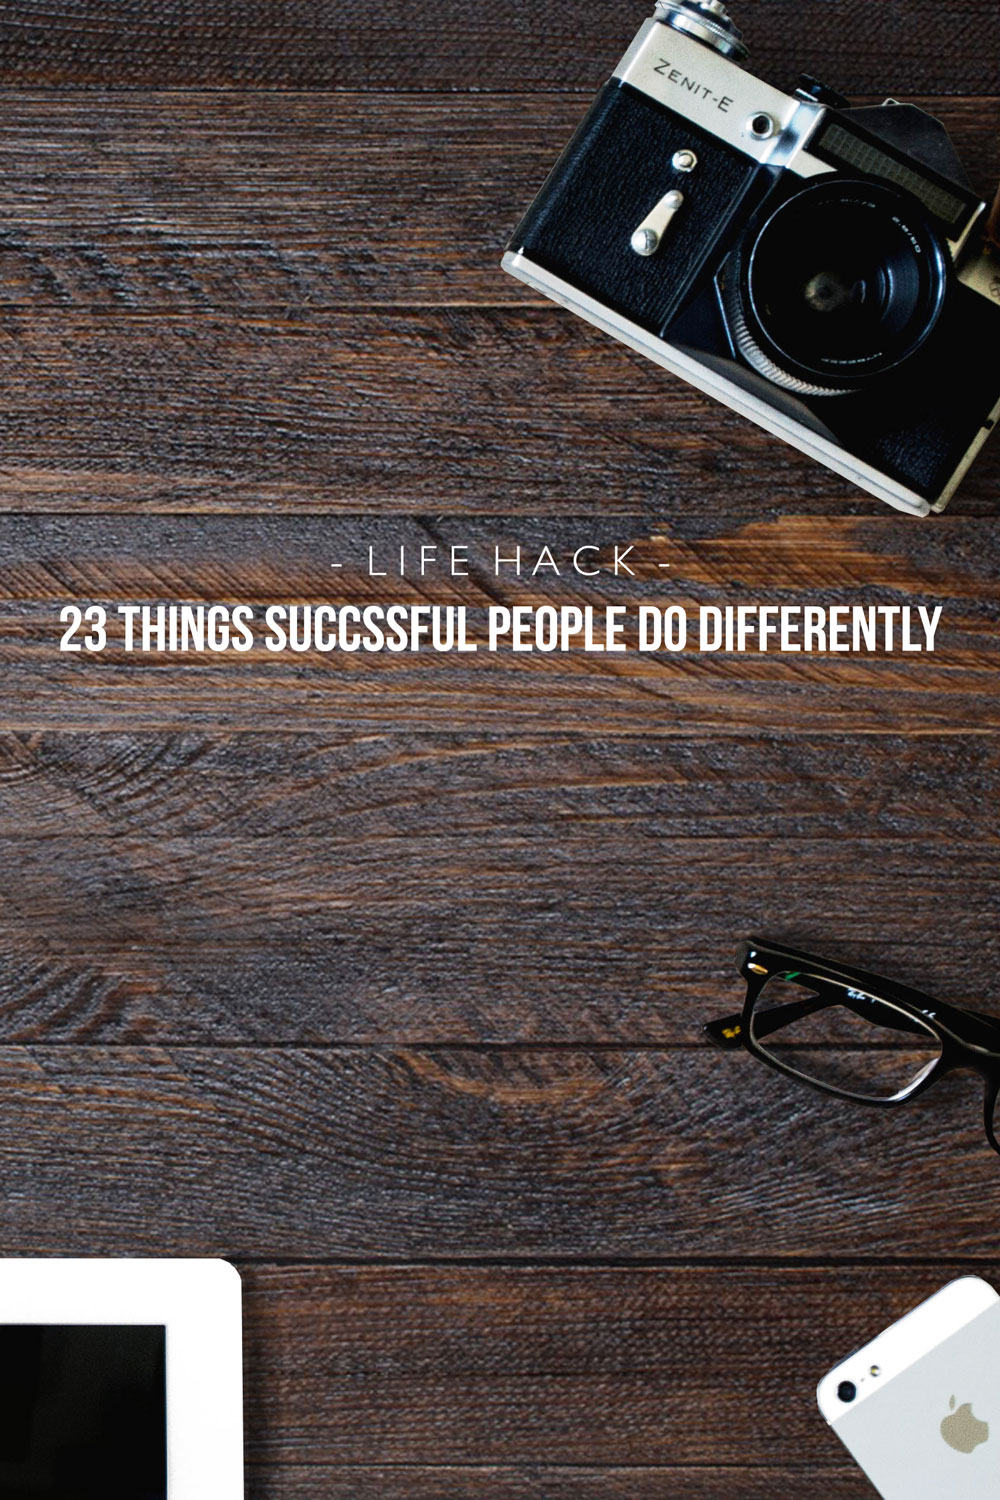 23 Things Successful People Do Differently